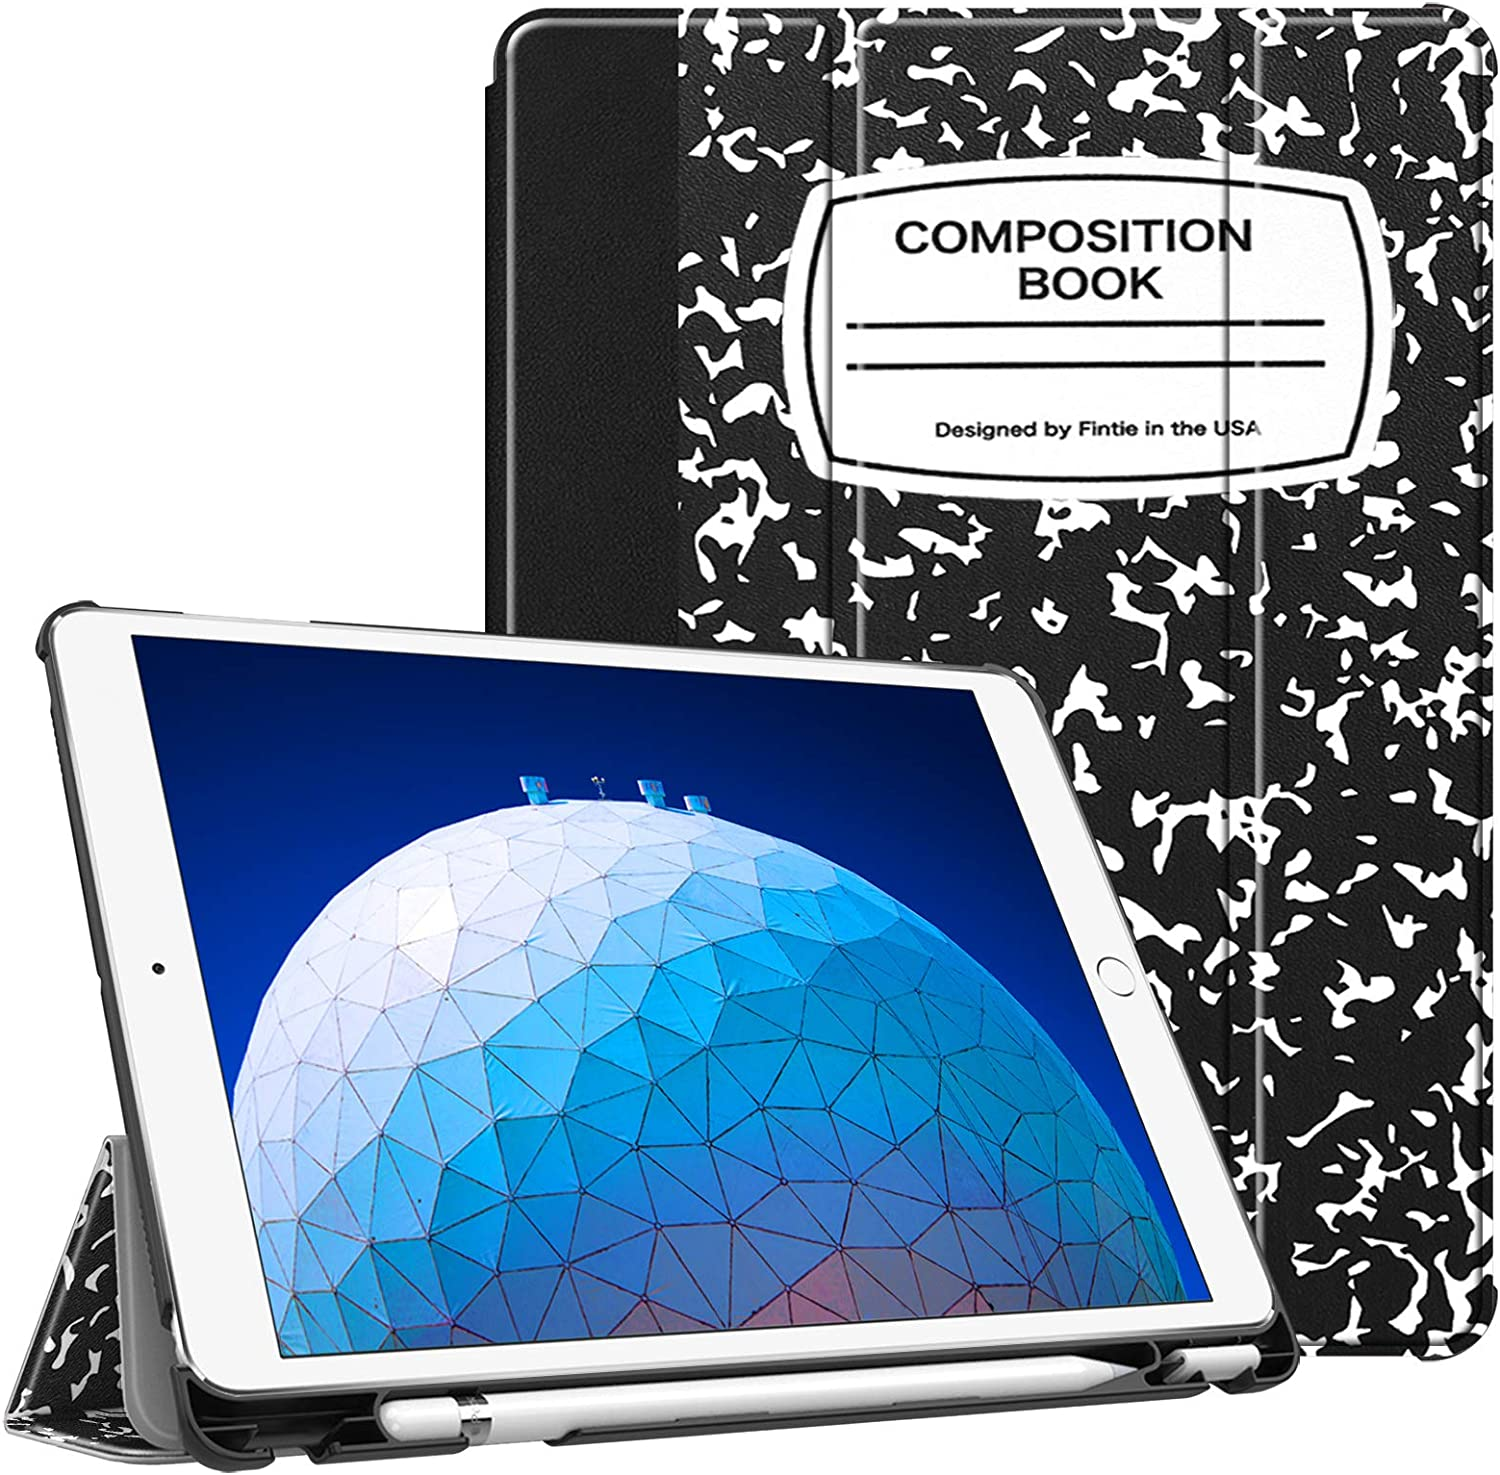 """Fintie Case for iPad Air (3rd Gen) 10.5"""" 2019 / iPad Pro 10.5"""" 2017 - [SlimShell] Ultra Lightweight Standing Protective Cover with Built-in Pencil Holder, Auto Wake/Sleep (Composition Book)"""